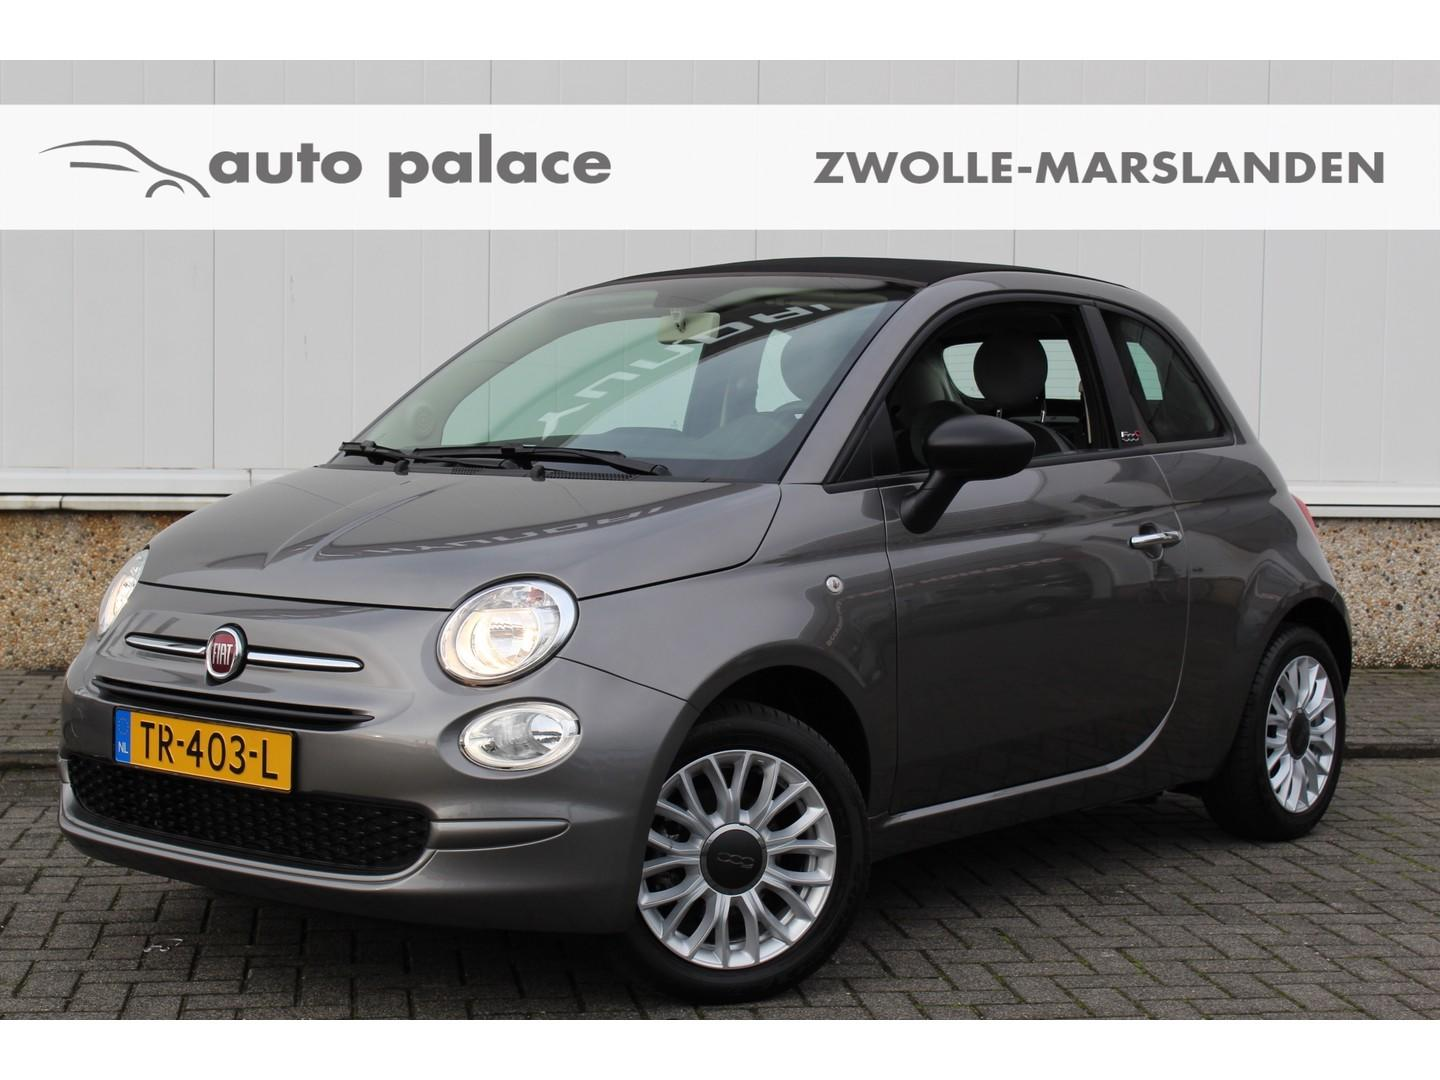 Fiat 500c Twinair turbo 80pk young